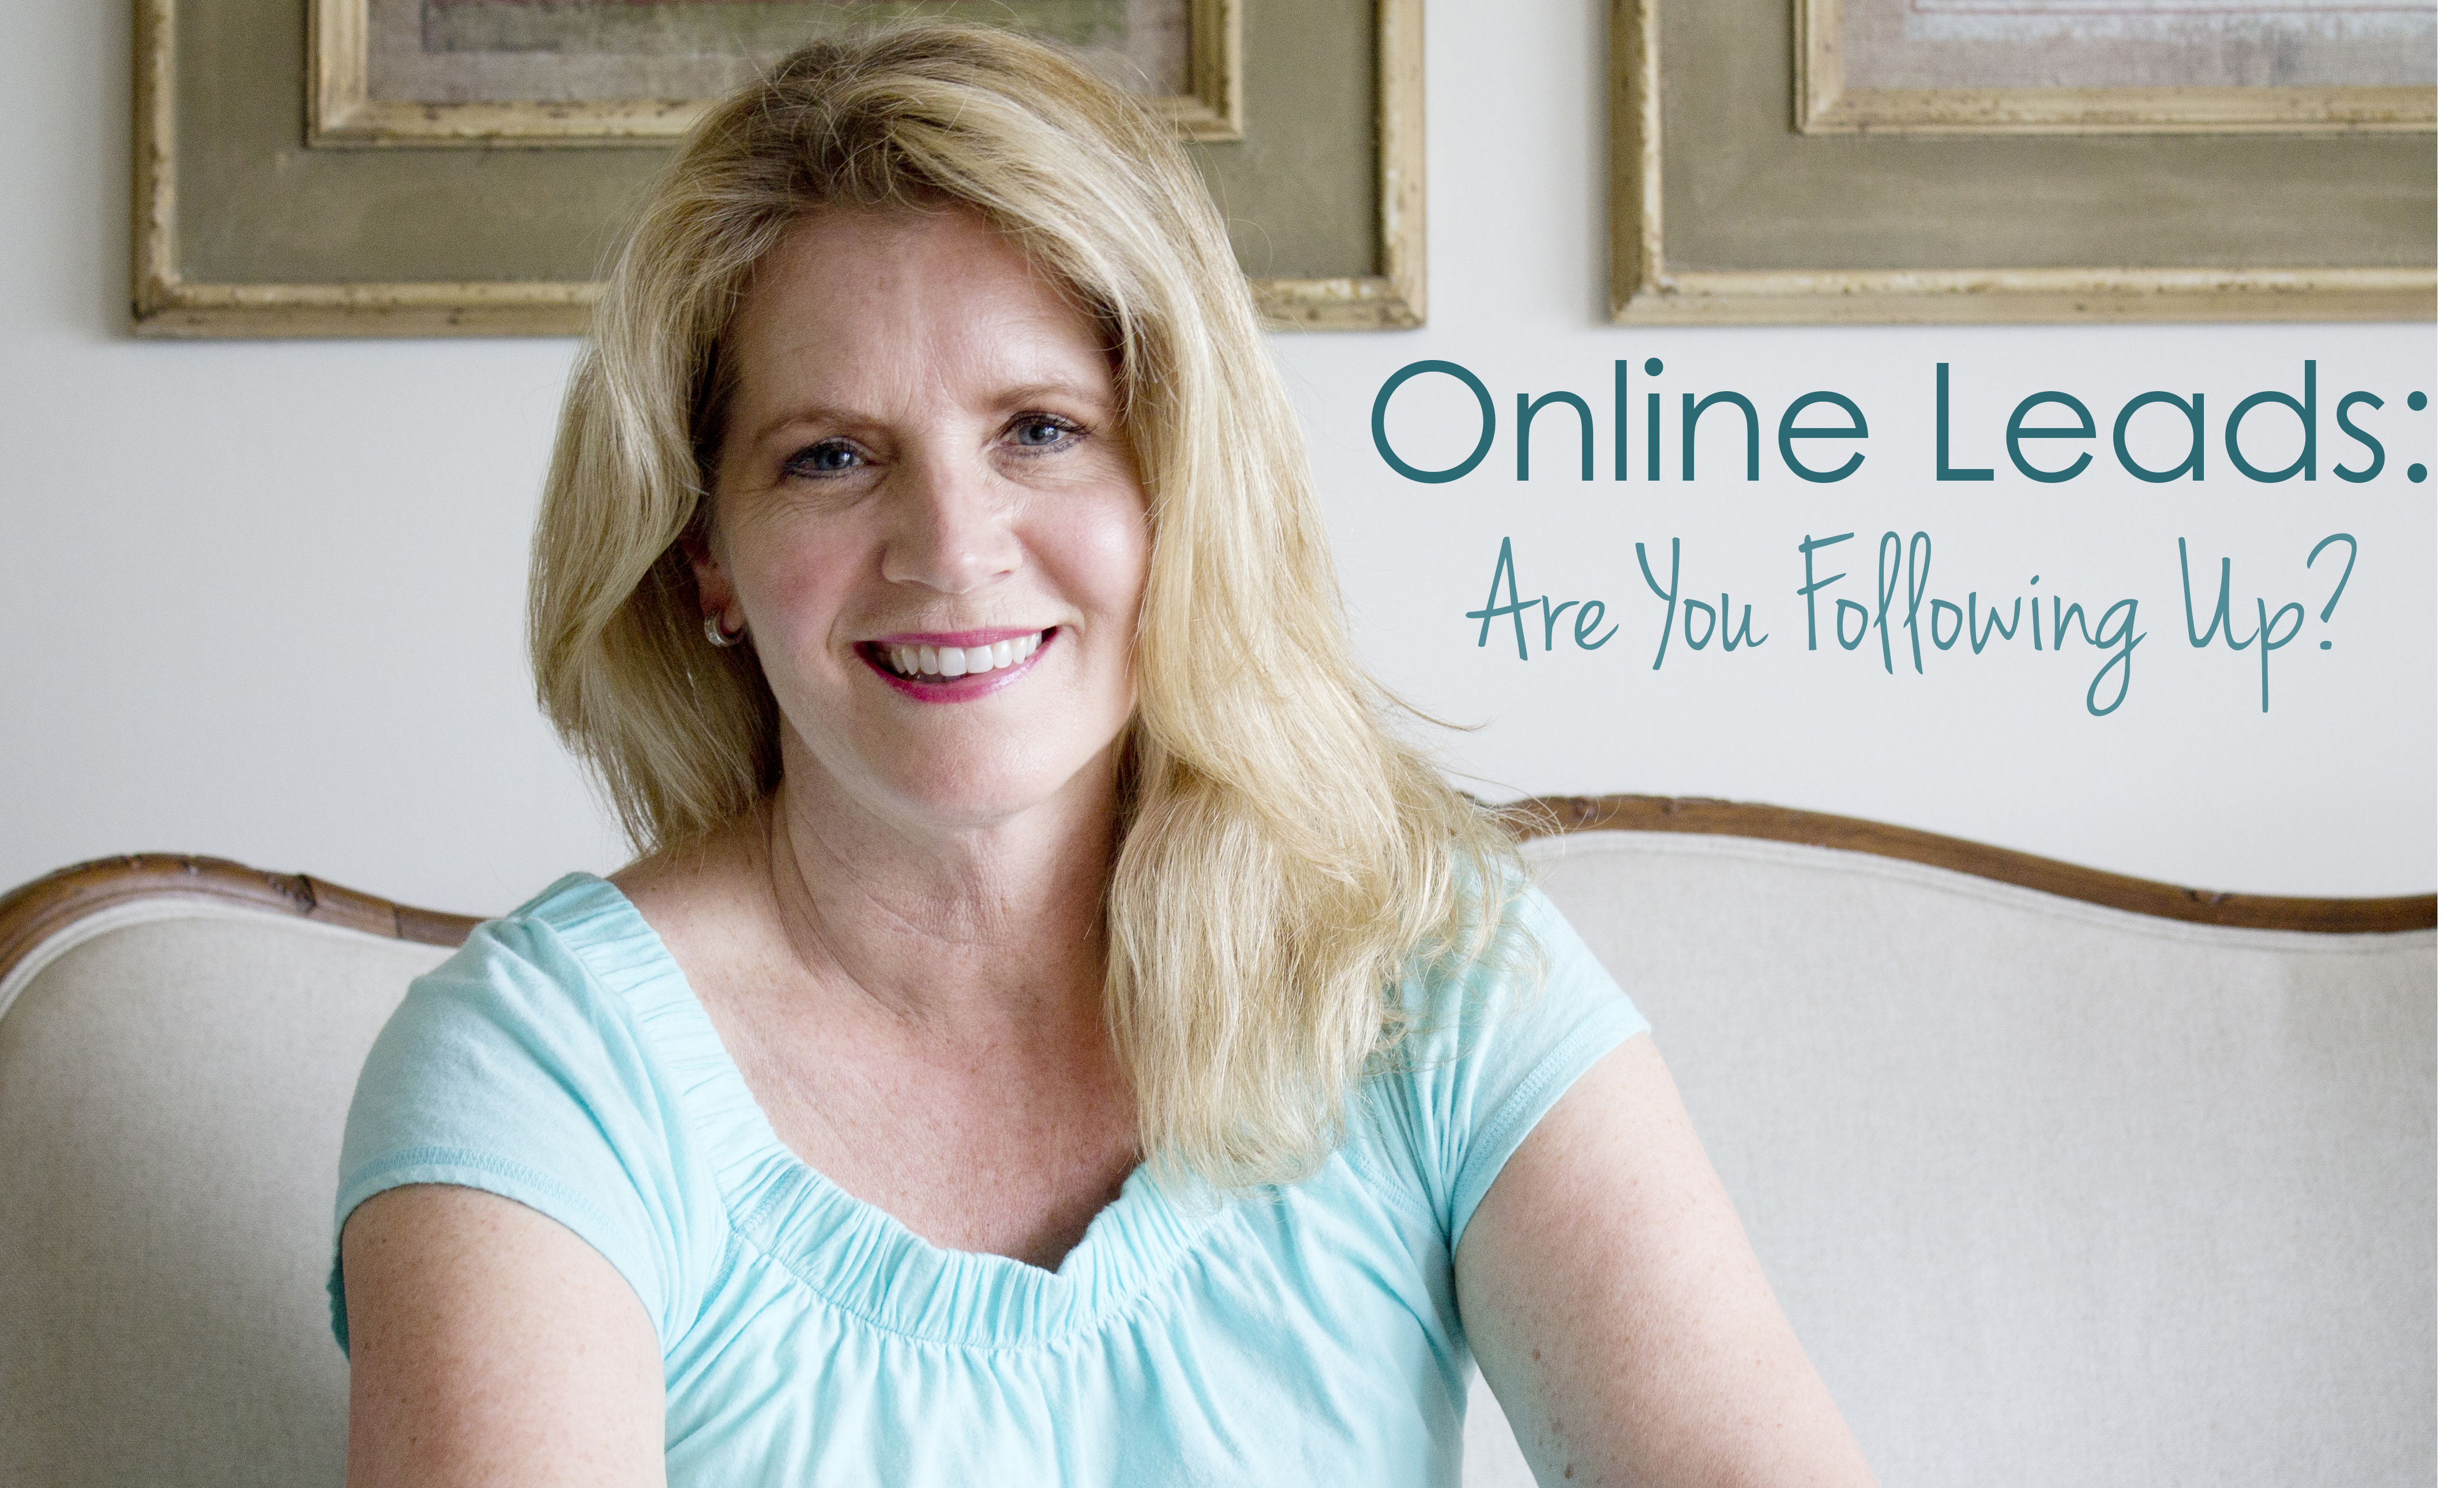 online-leads-are-you-following-up